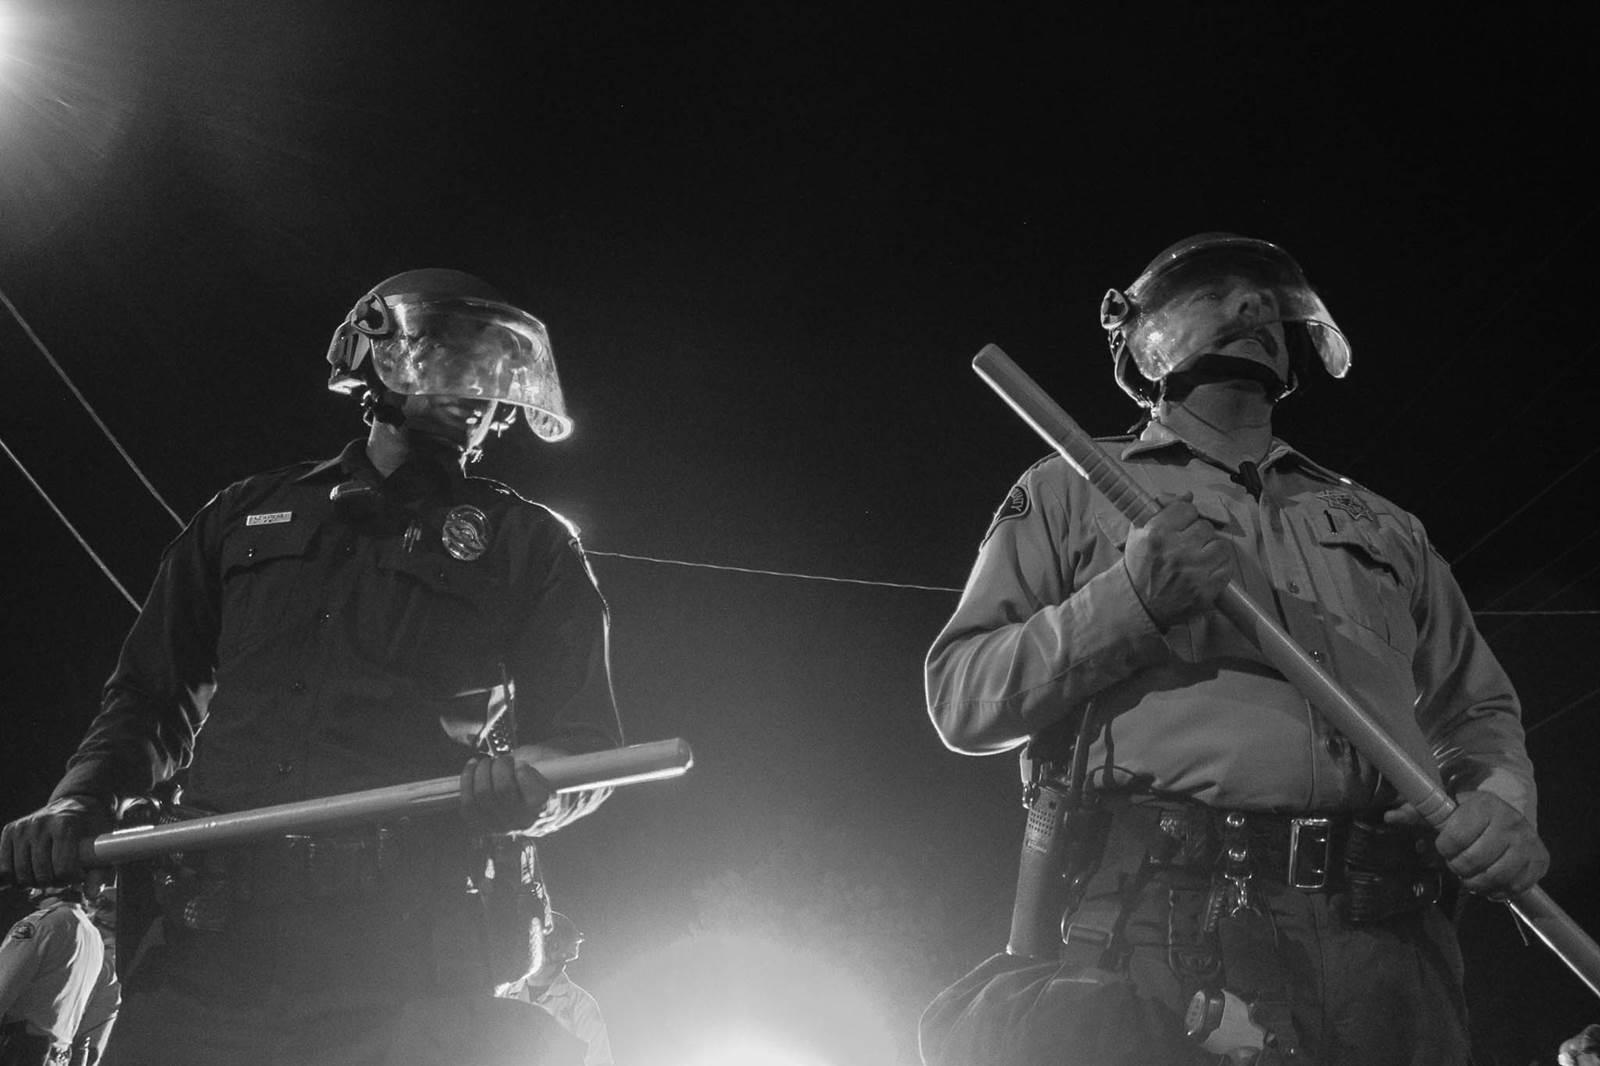 El Cajon Police Department prepared for protests in riot gear.